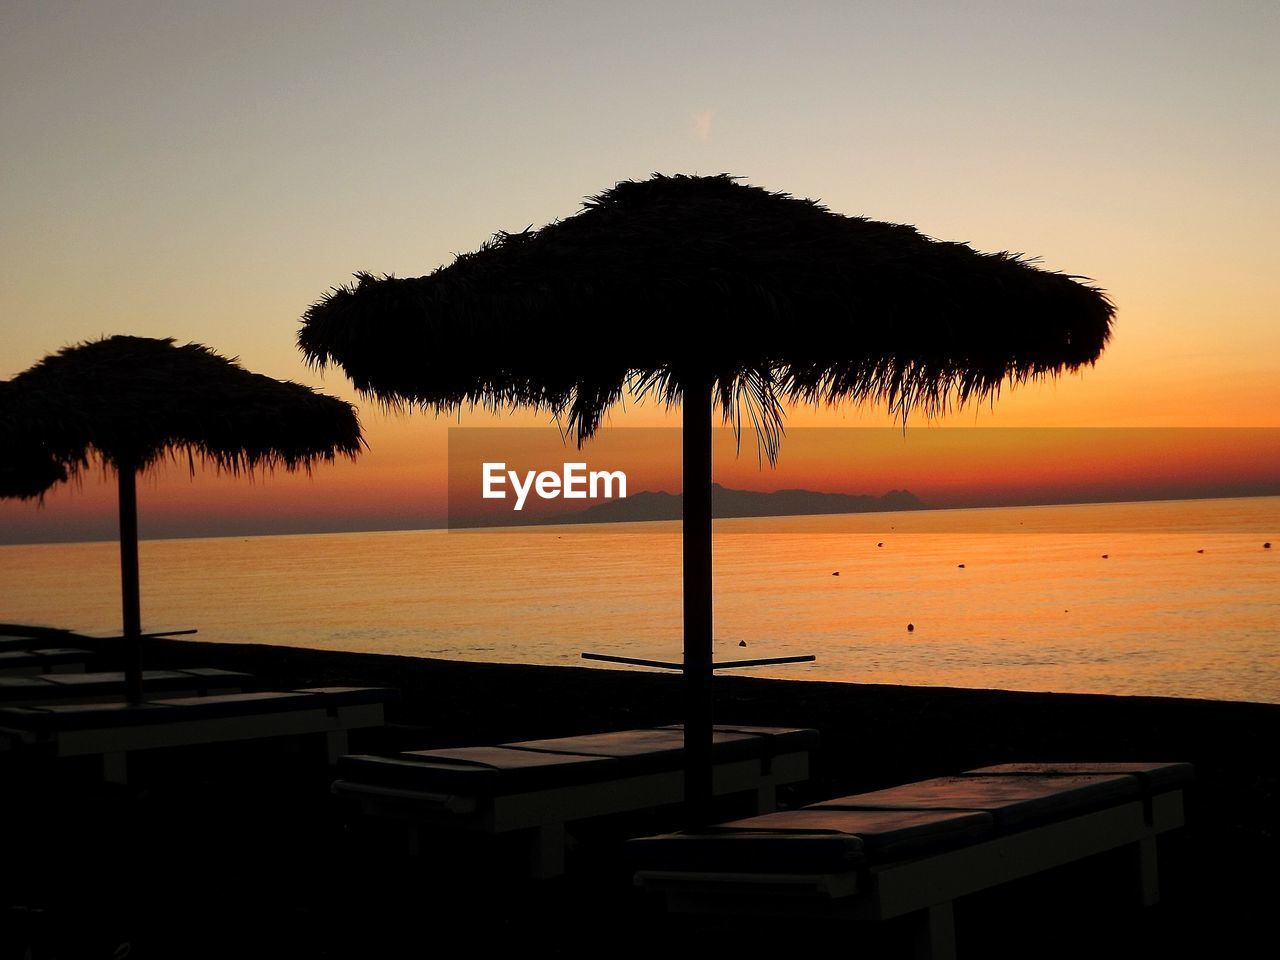 sunset, sea, beauty in nature, beach, tranquility, water, tranquil scene, nature, scenics, silhouette, no people, outdoors, idyllic, thatched roof, horizon over water, tree, sky, clear sky, palm tree, day